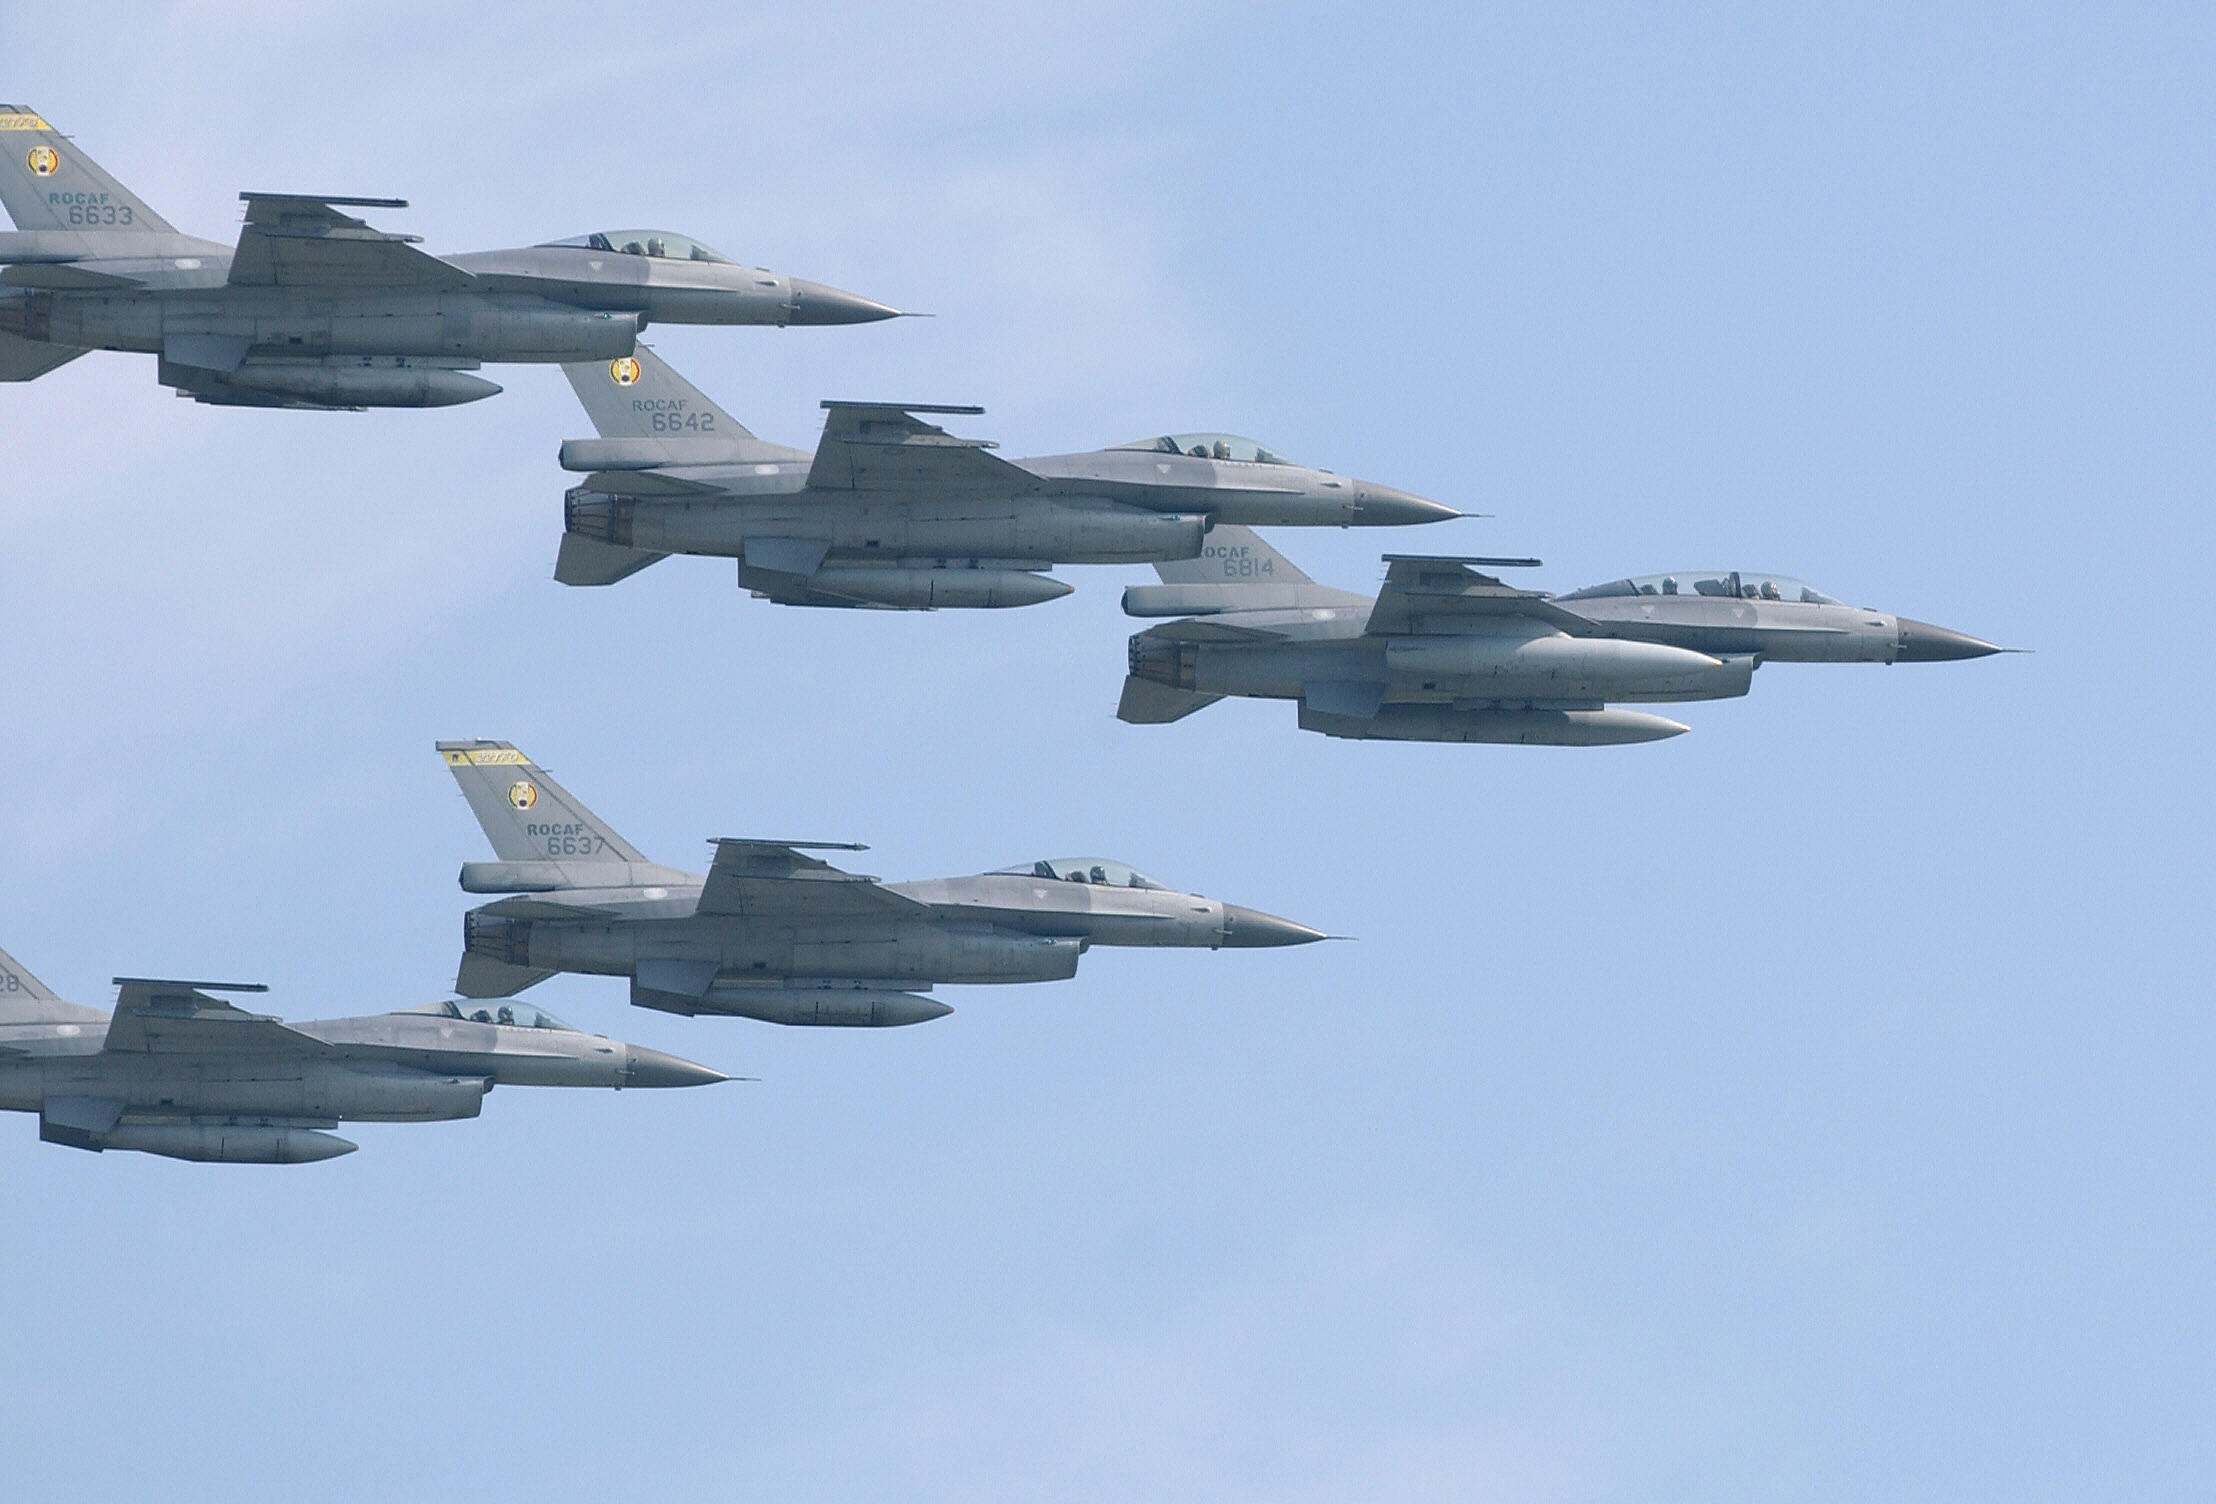 A fleet of American-made F-16 fighters from the Taiwanese Air Force fly in formation over Taipei's Sungshan airport on Sept. 2, 2007. (Patrick Lin/AFP via Getty Images)